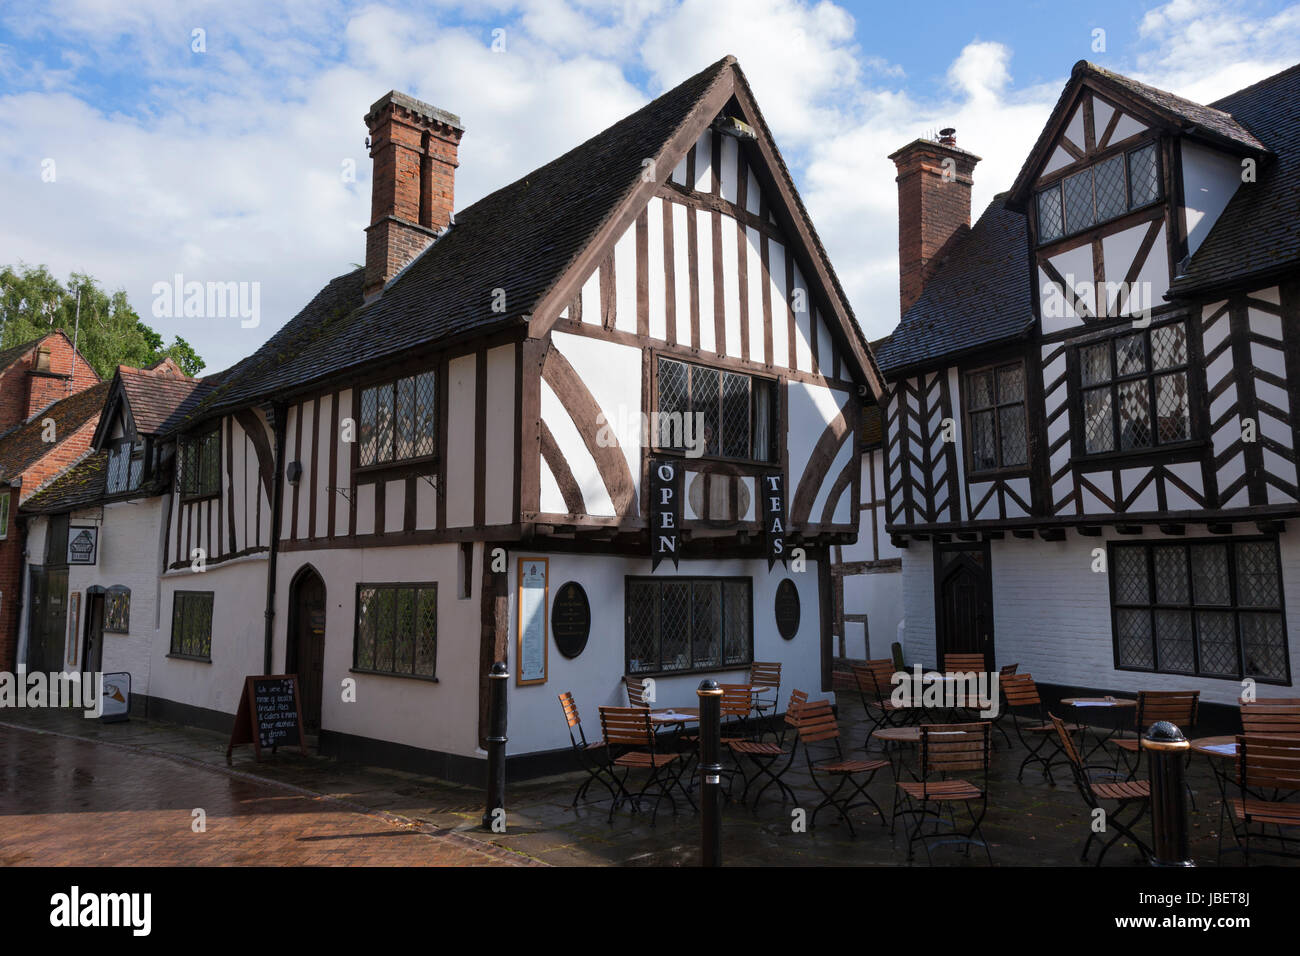 Thomas Oken Tea Rooms in the historic town of Warwick, situated next to Warwick Castle. (88) Stock Photo